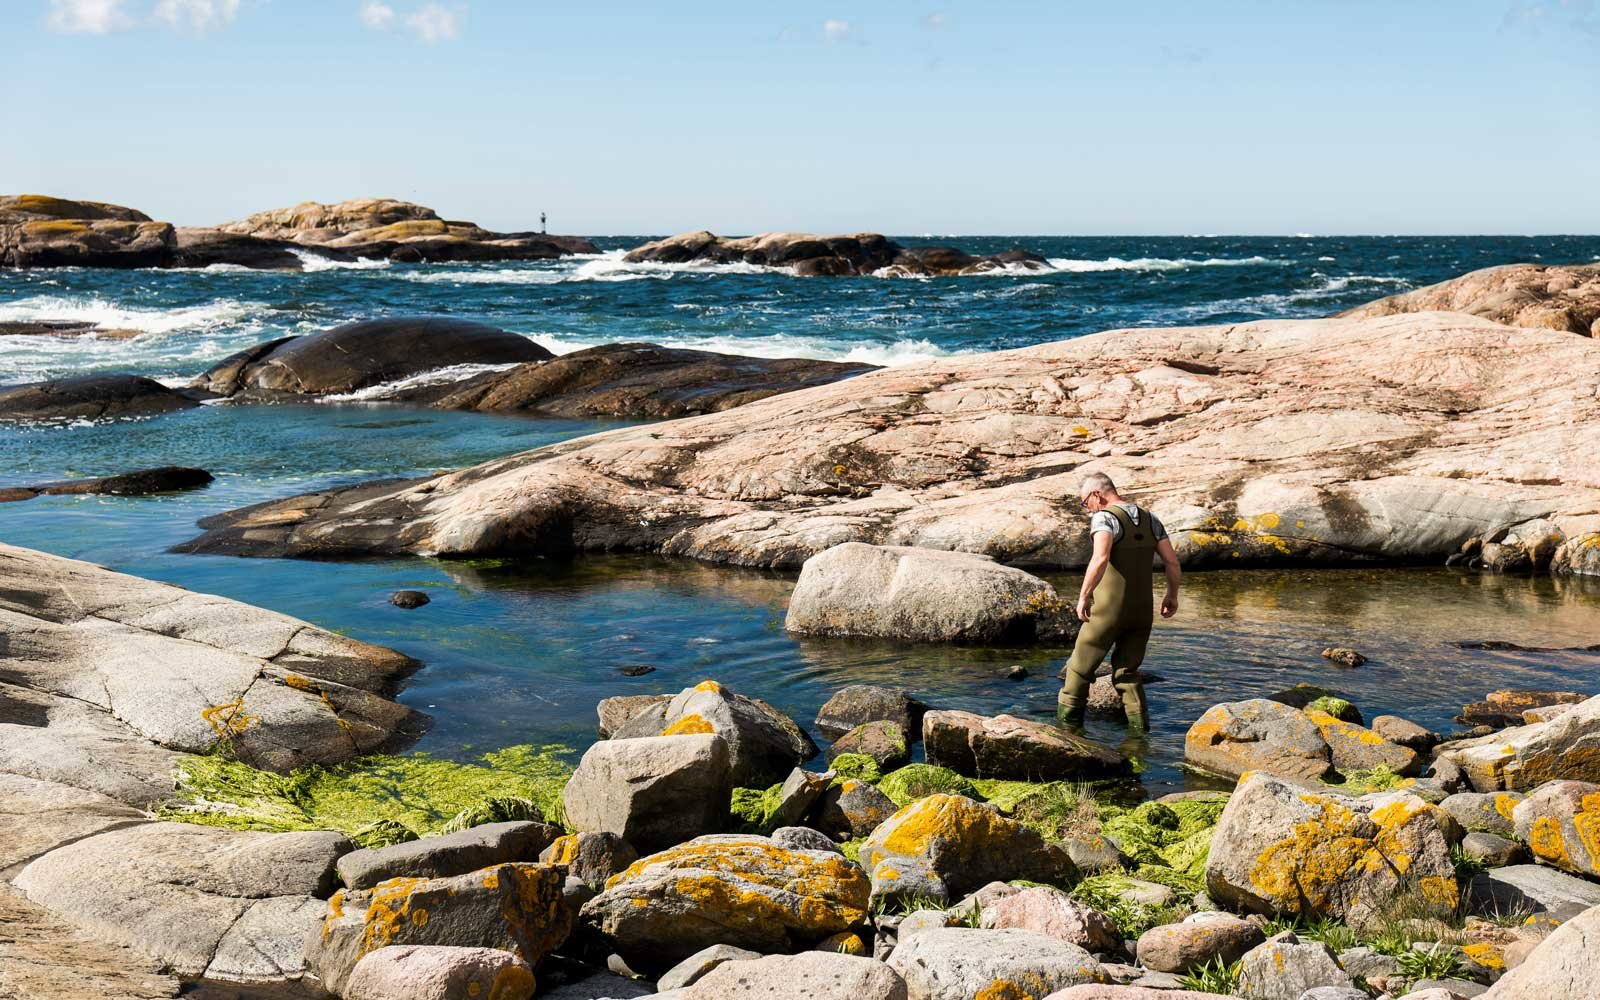 Seaweed and Seafood Safari in Sweden with Airbnb Experiences